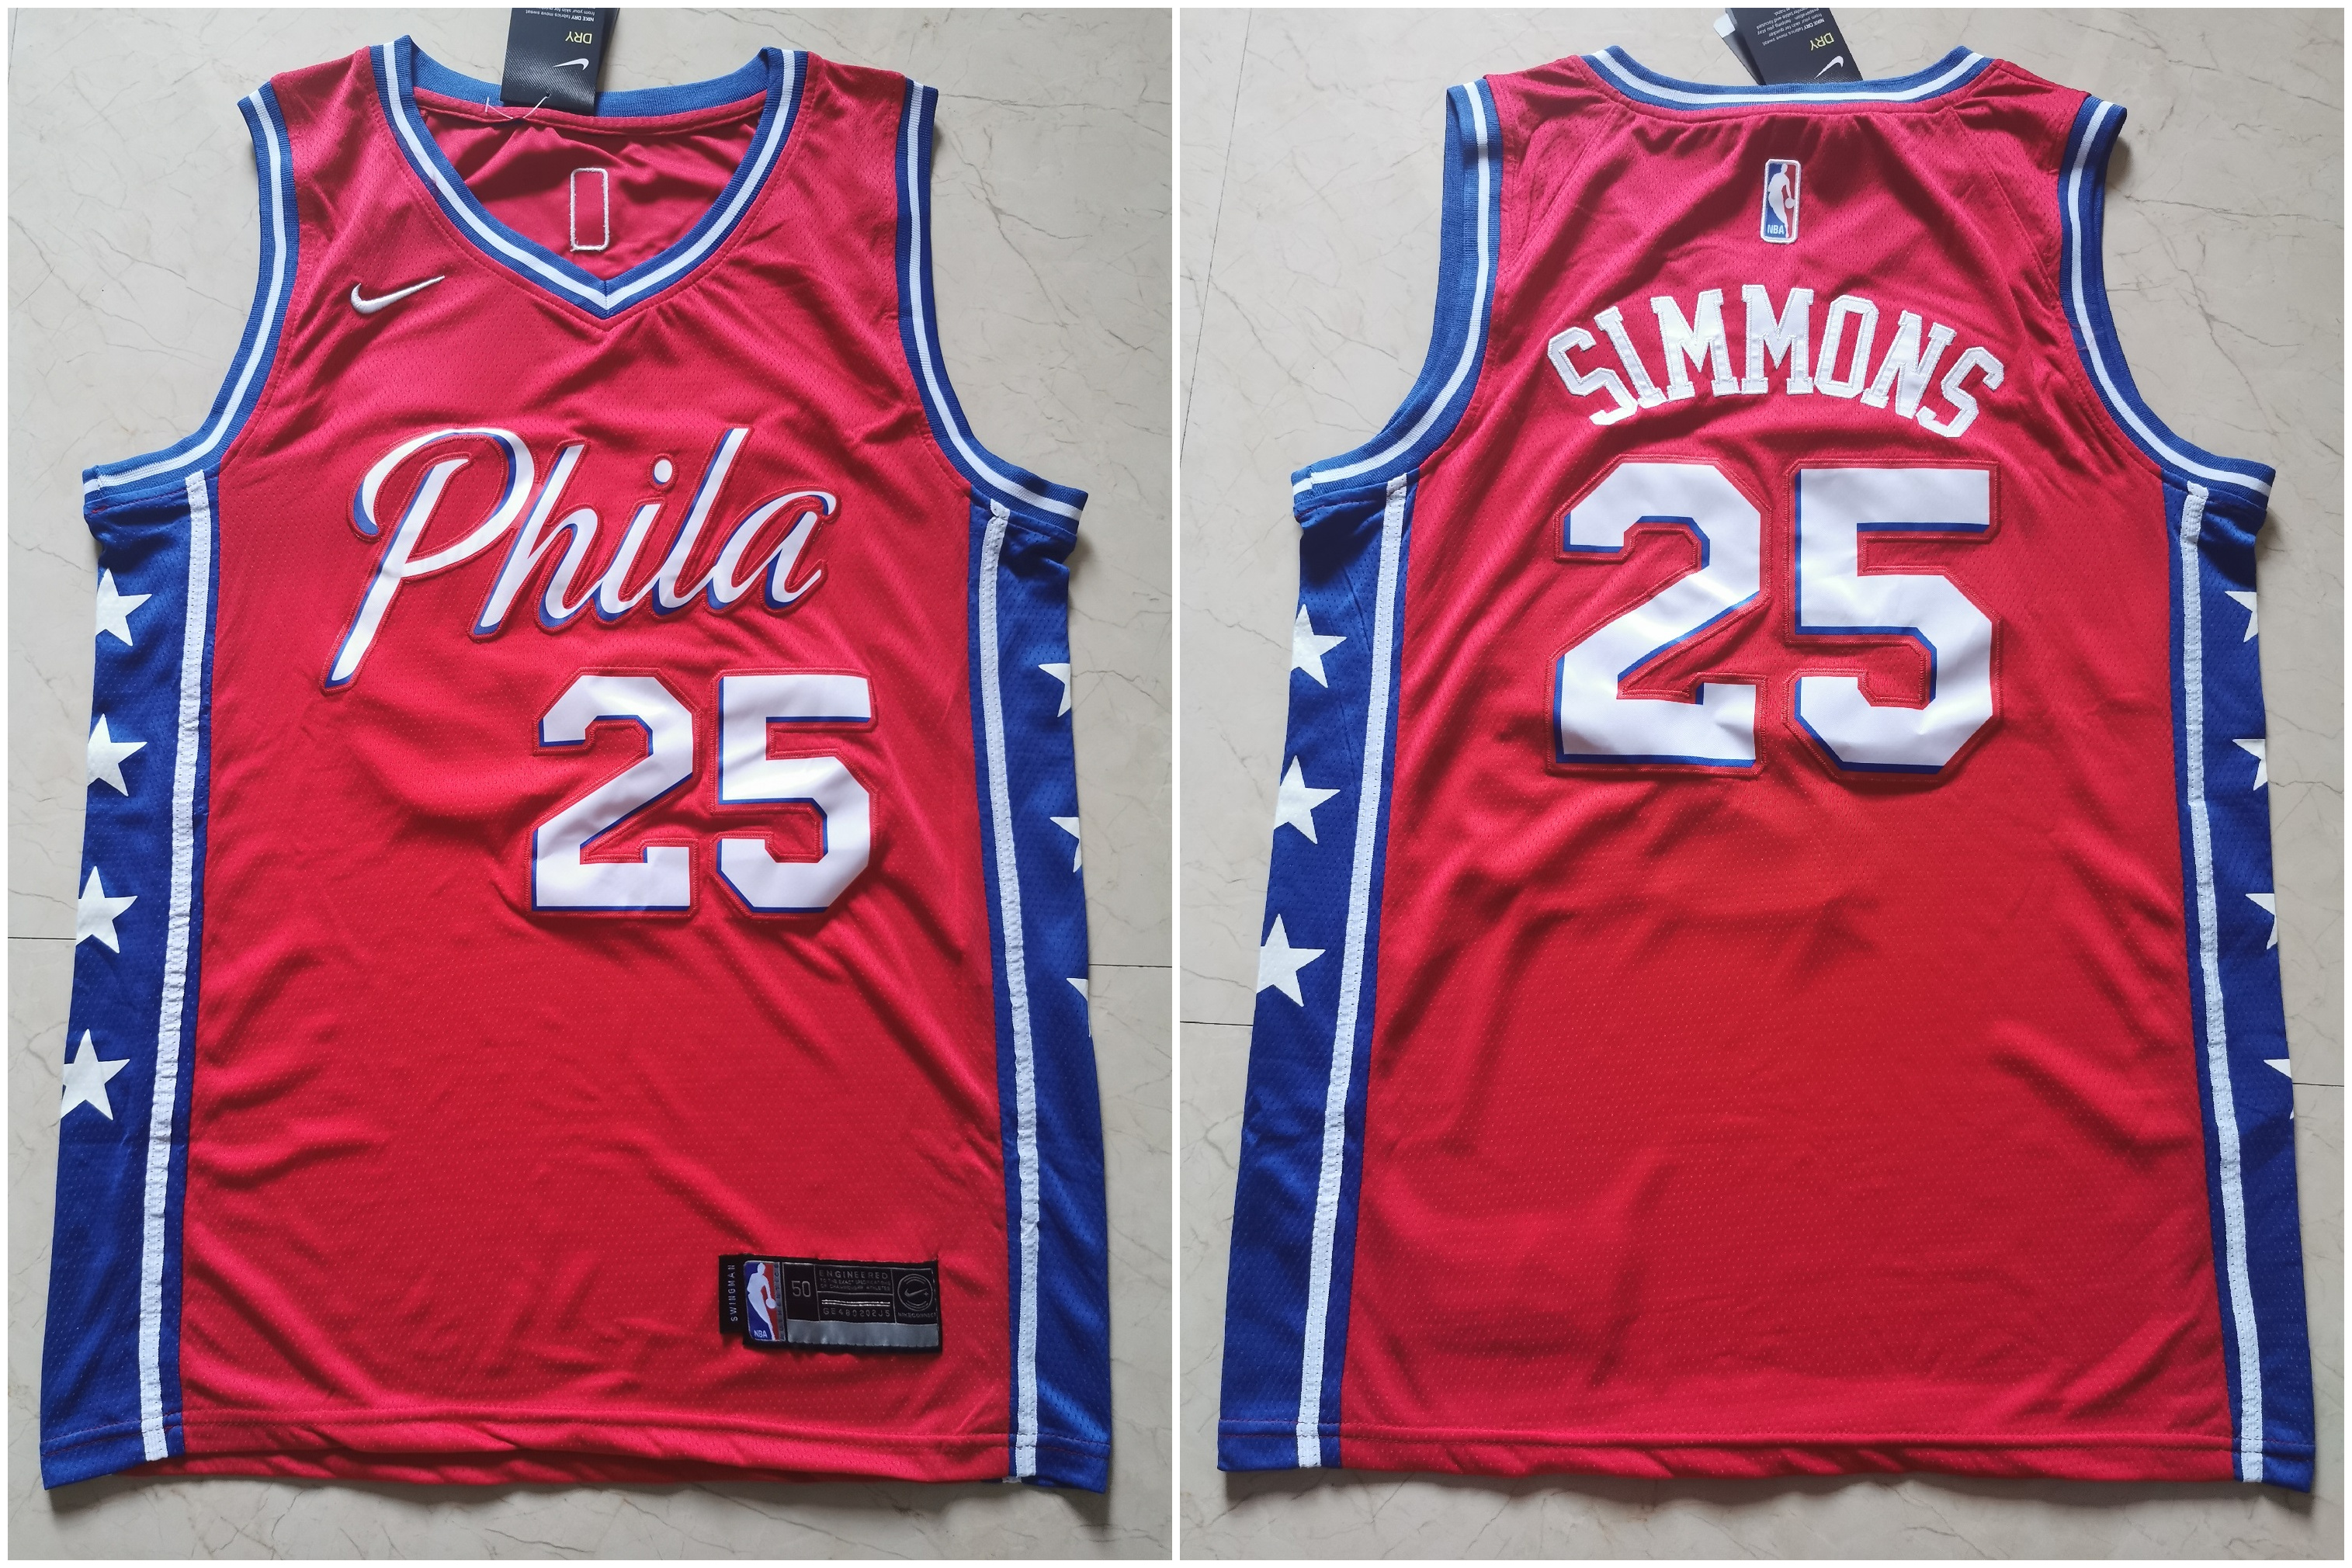 76ers 25 Ben Simmons Red Nike Swingman Jersey